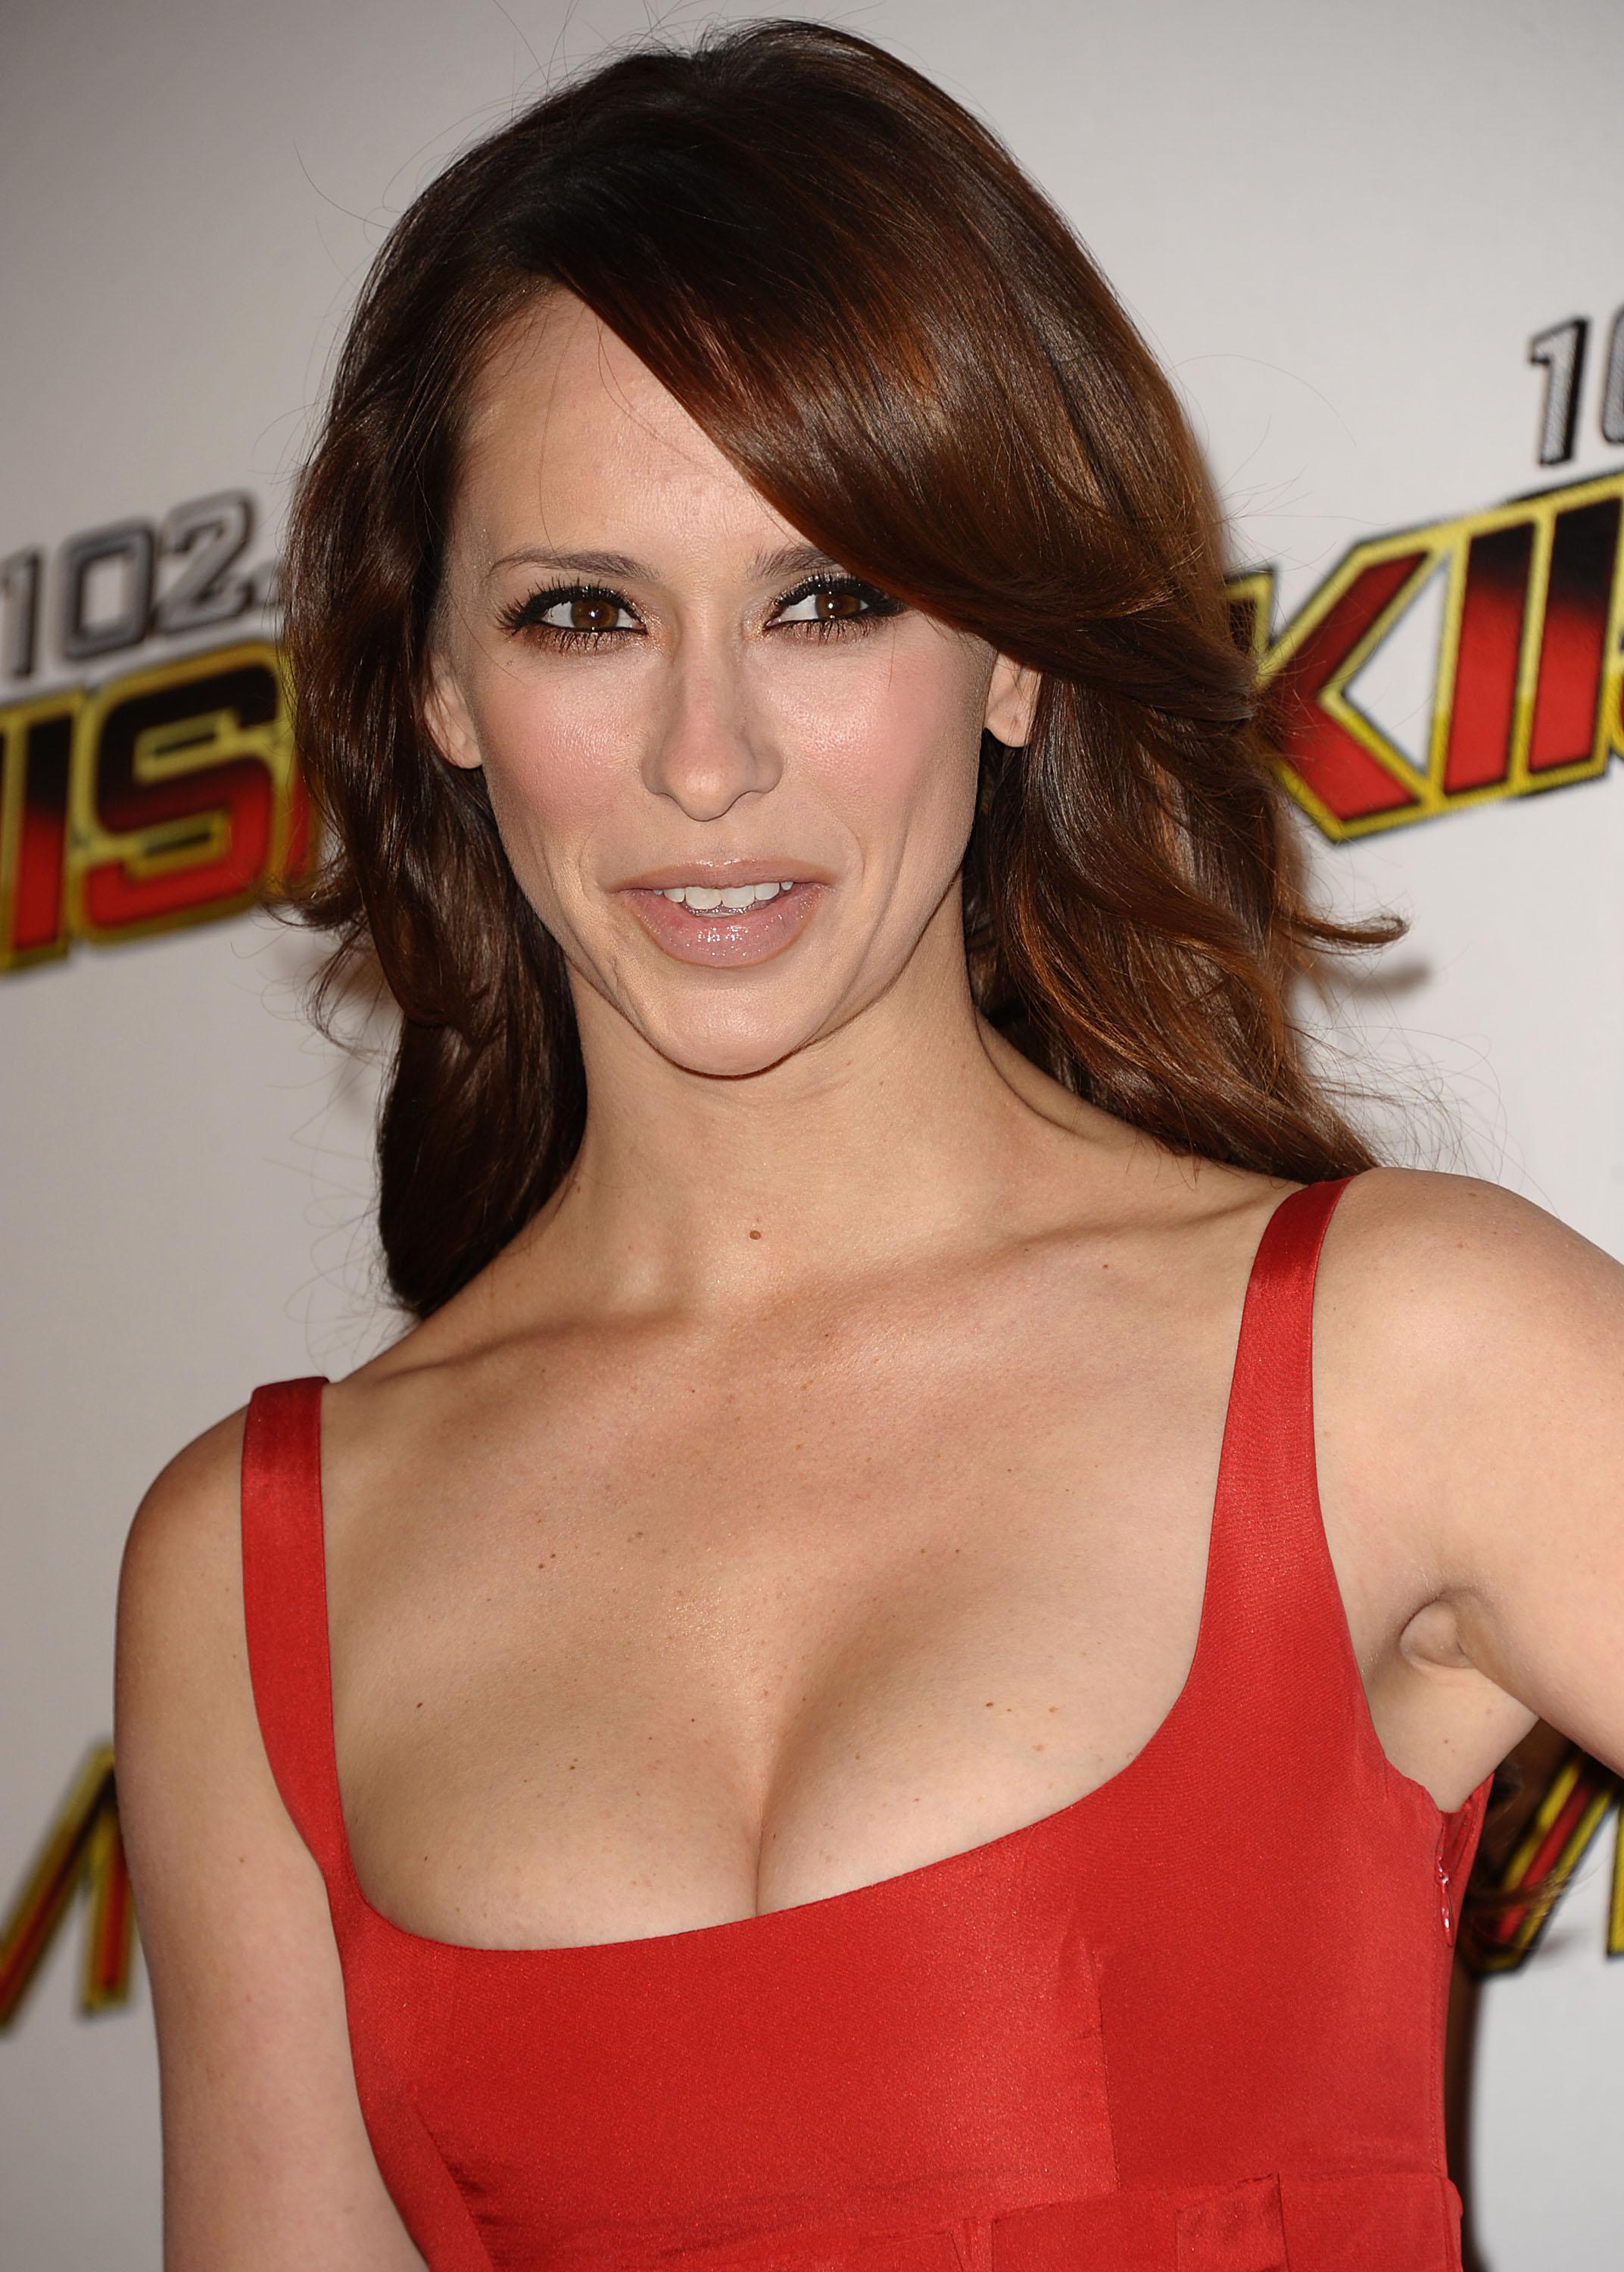 Jennifer Love Hewitt Hot in Red